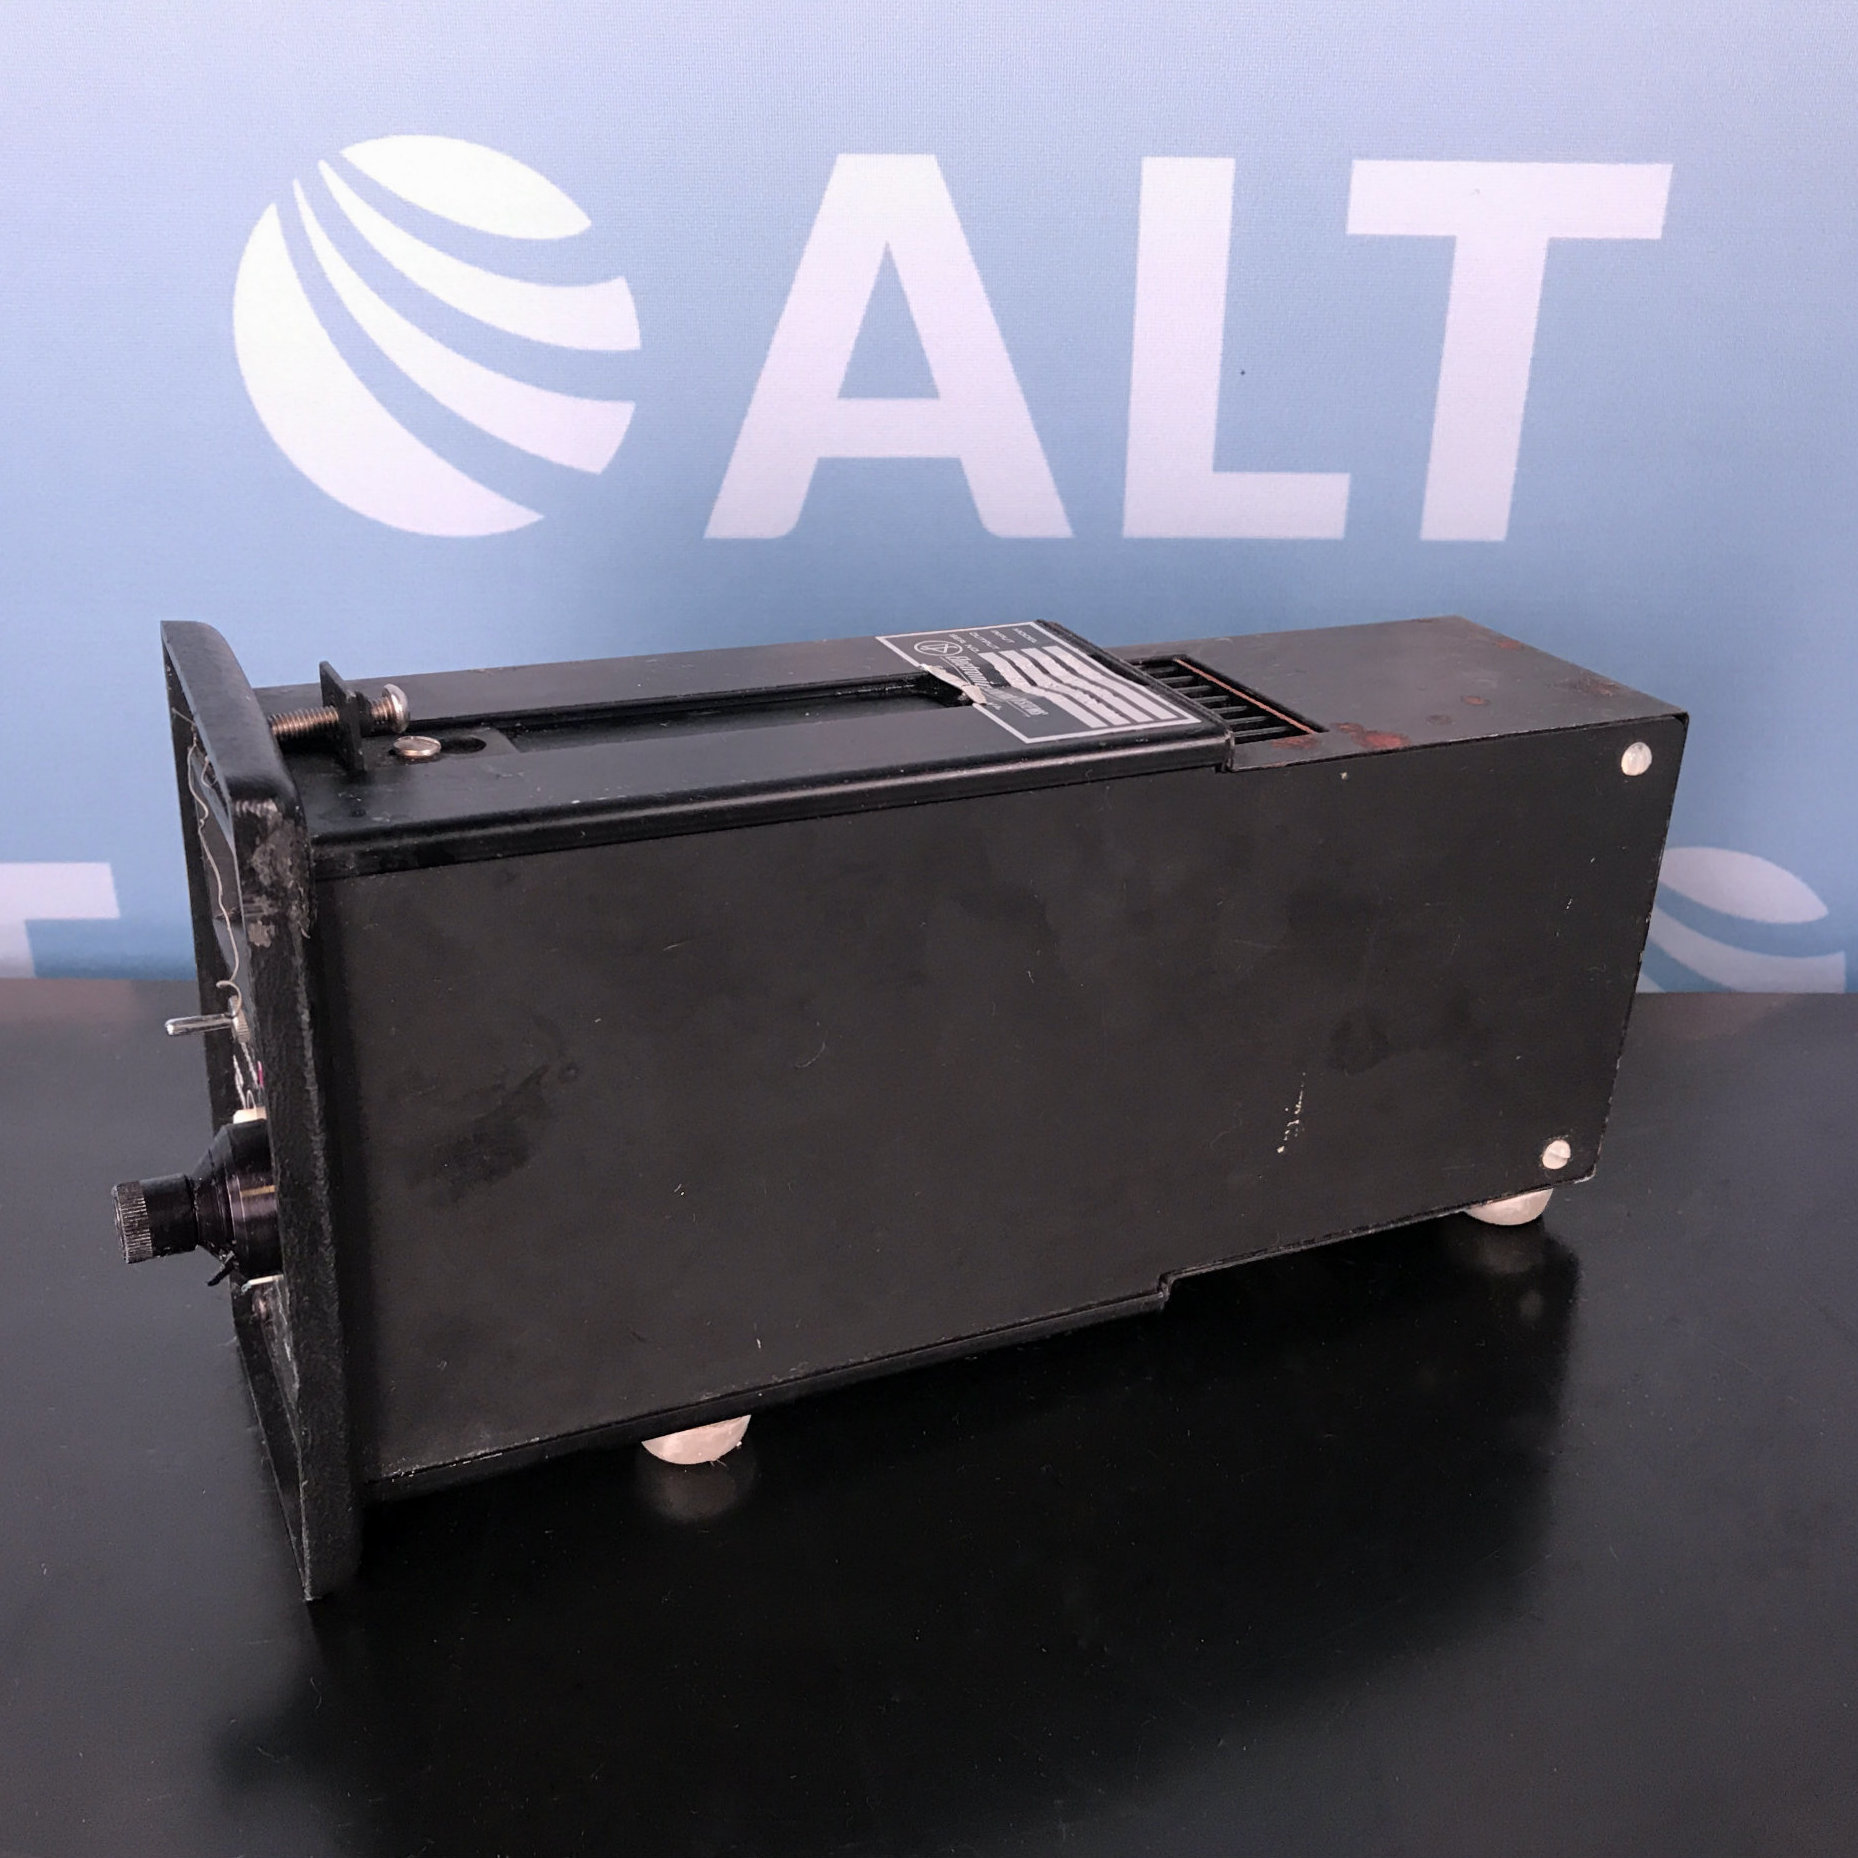 Electronic Control Systems Model 800-262 Image